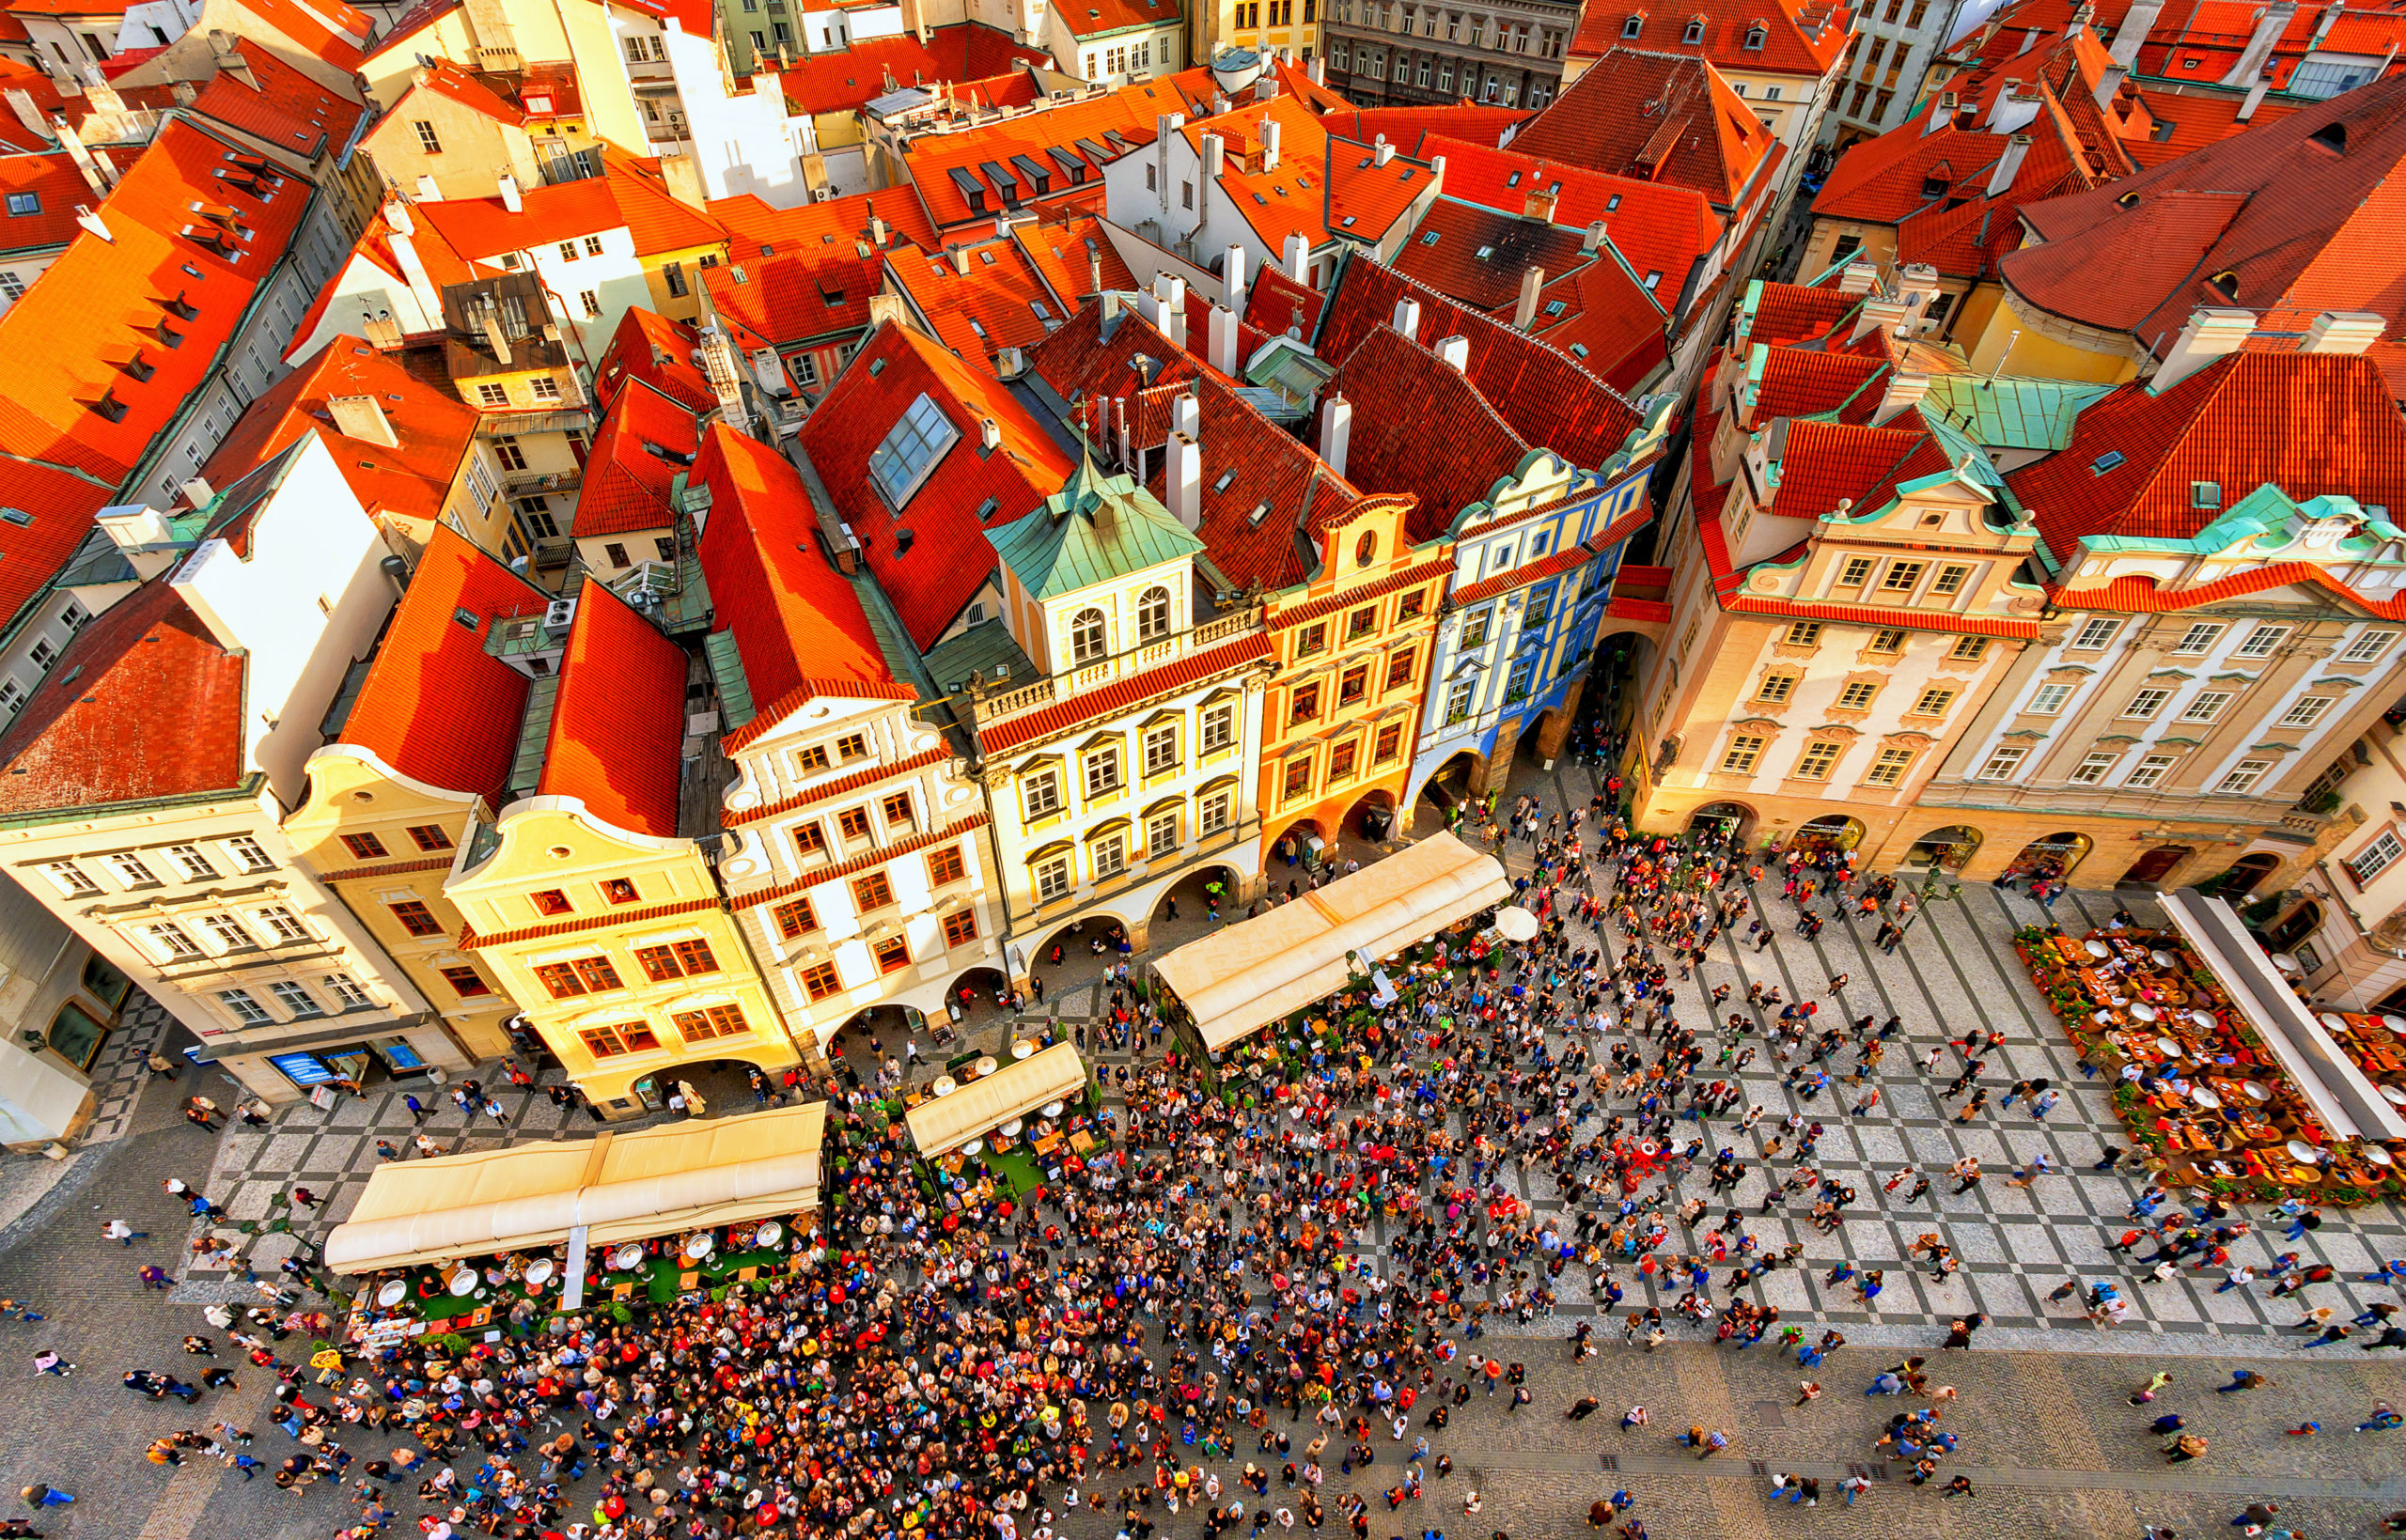 Prague is busy